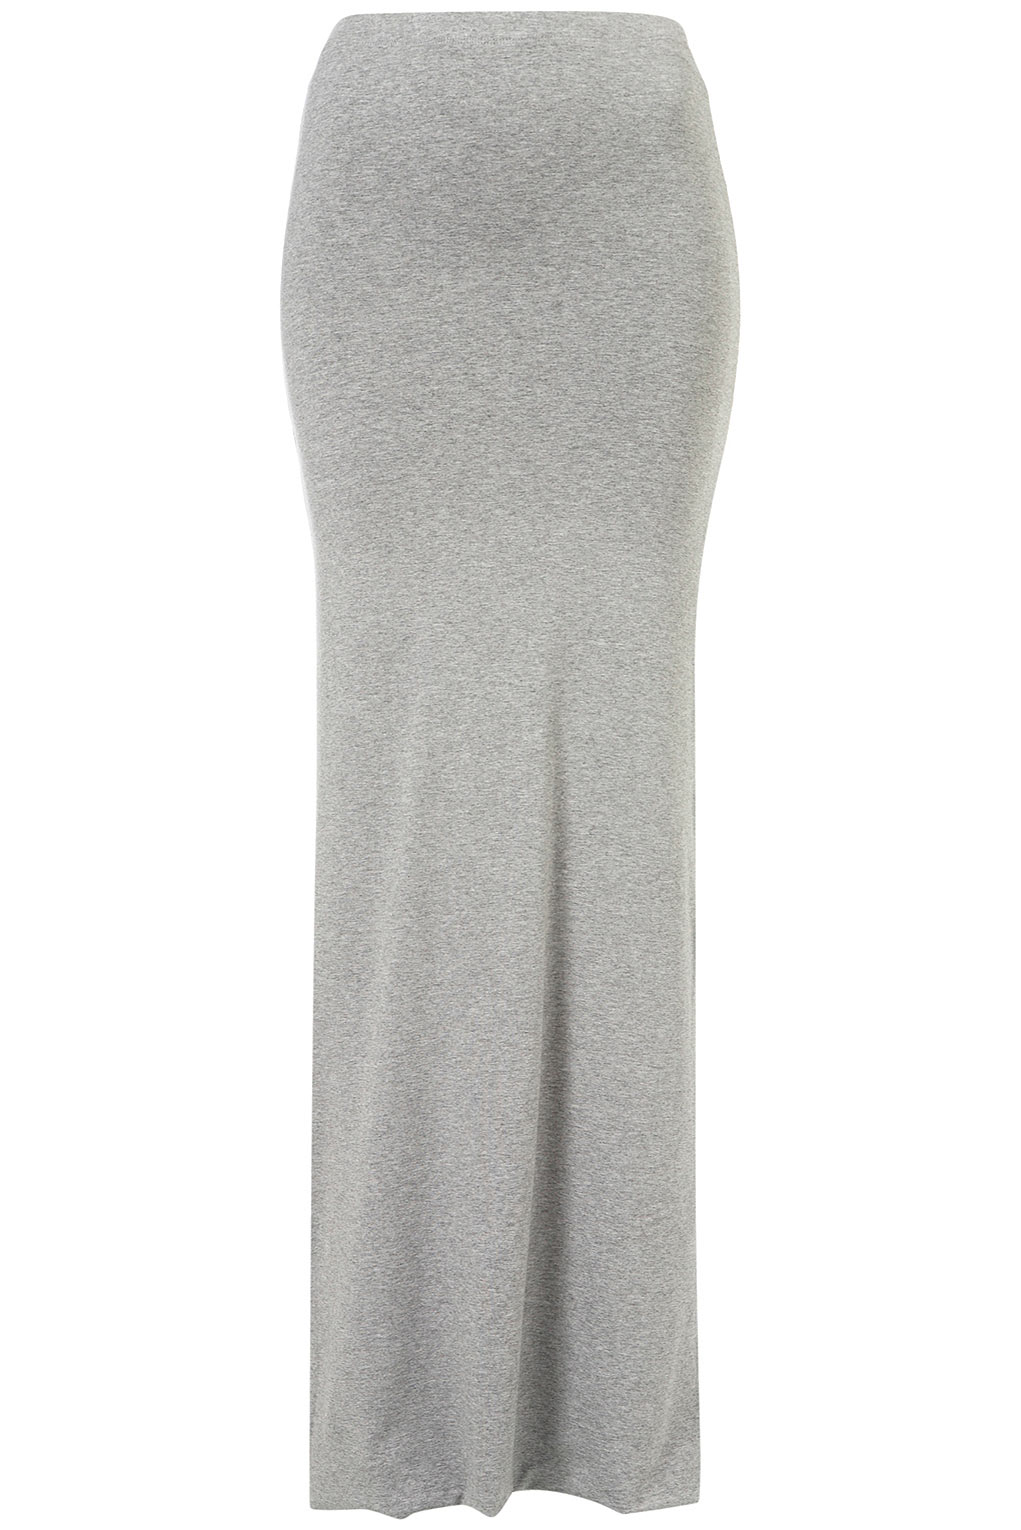 Topshop Grey Double Layer Maxi Skirt in Gray | Lyst